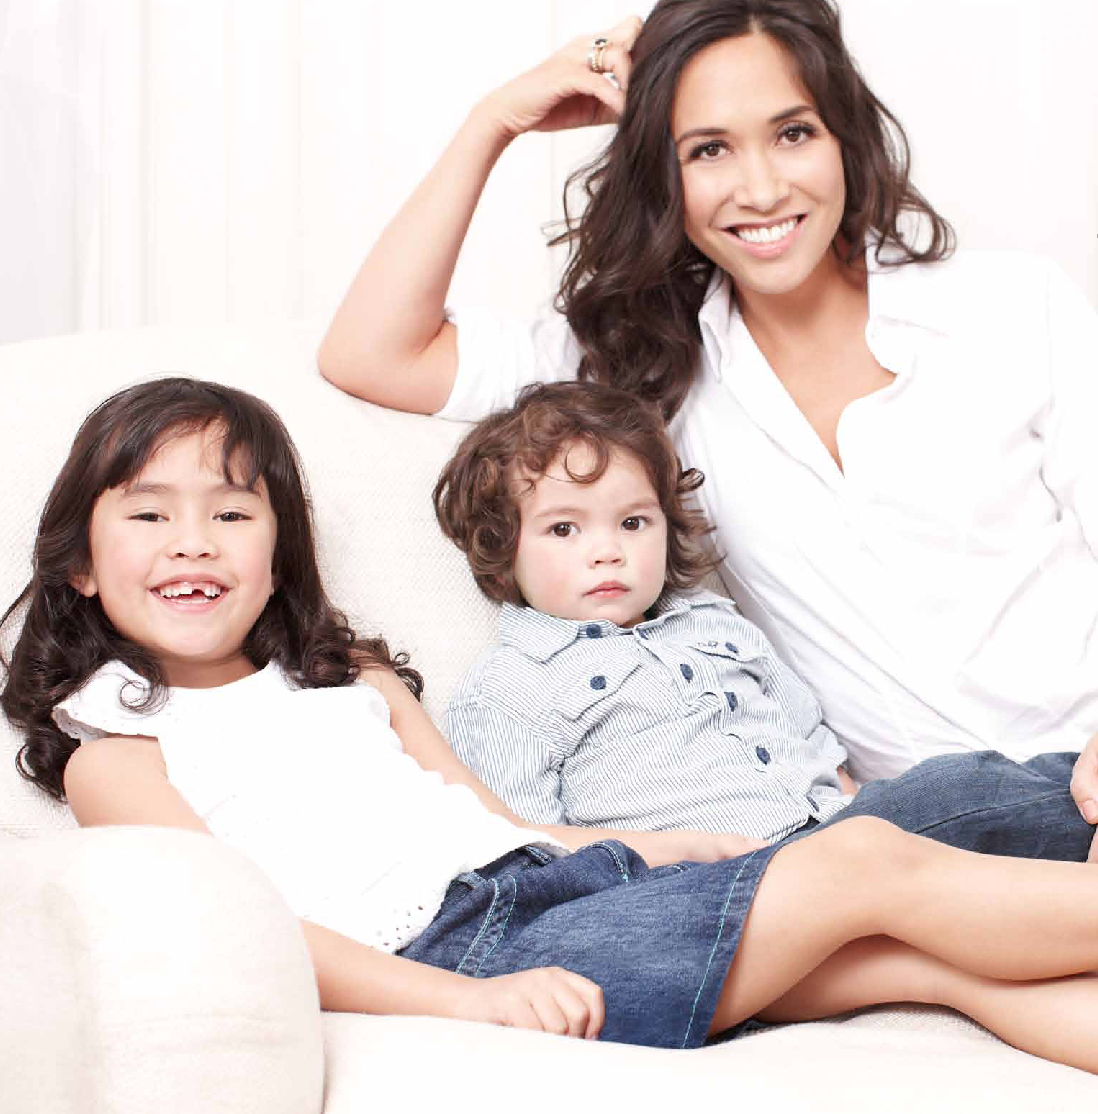 mamasVIB | V. I. BABYMAMAS: Why Myleene Klass is one talented mum - and how you can show you are too!V. I. BABYMAMAS: Why Myleene Klass is one talented mum - and how you can show you are too! | myeline Klass | little woods | mothercrae | fashion | style | talented mums | competition | twitter comp | mothers day | mamasVIB | comp | bonita Turner | myeline | singer | baby K | video comp | pregnant | maxi dress |sexy | red dress | coleen rooney | style